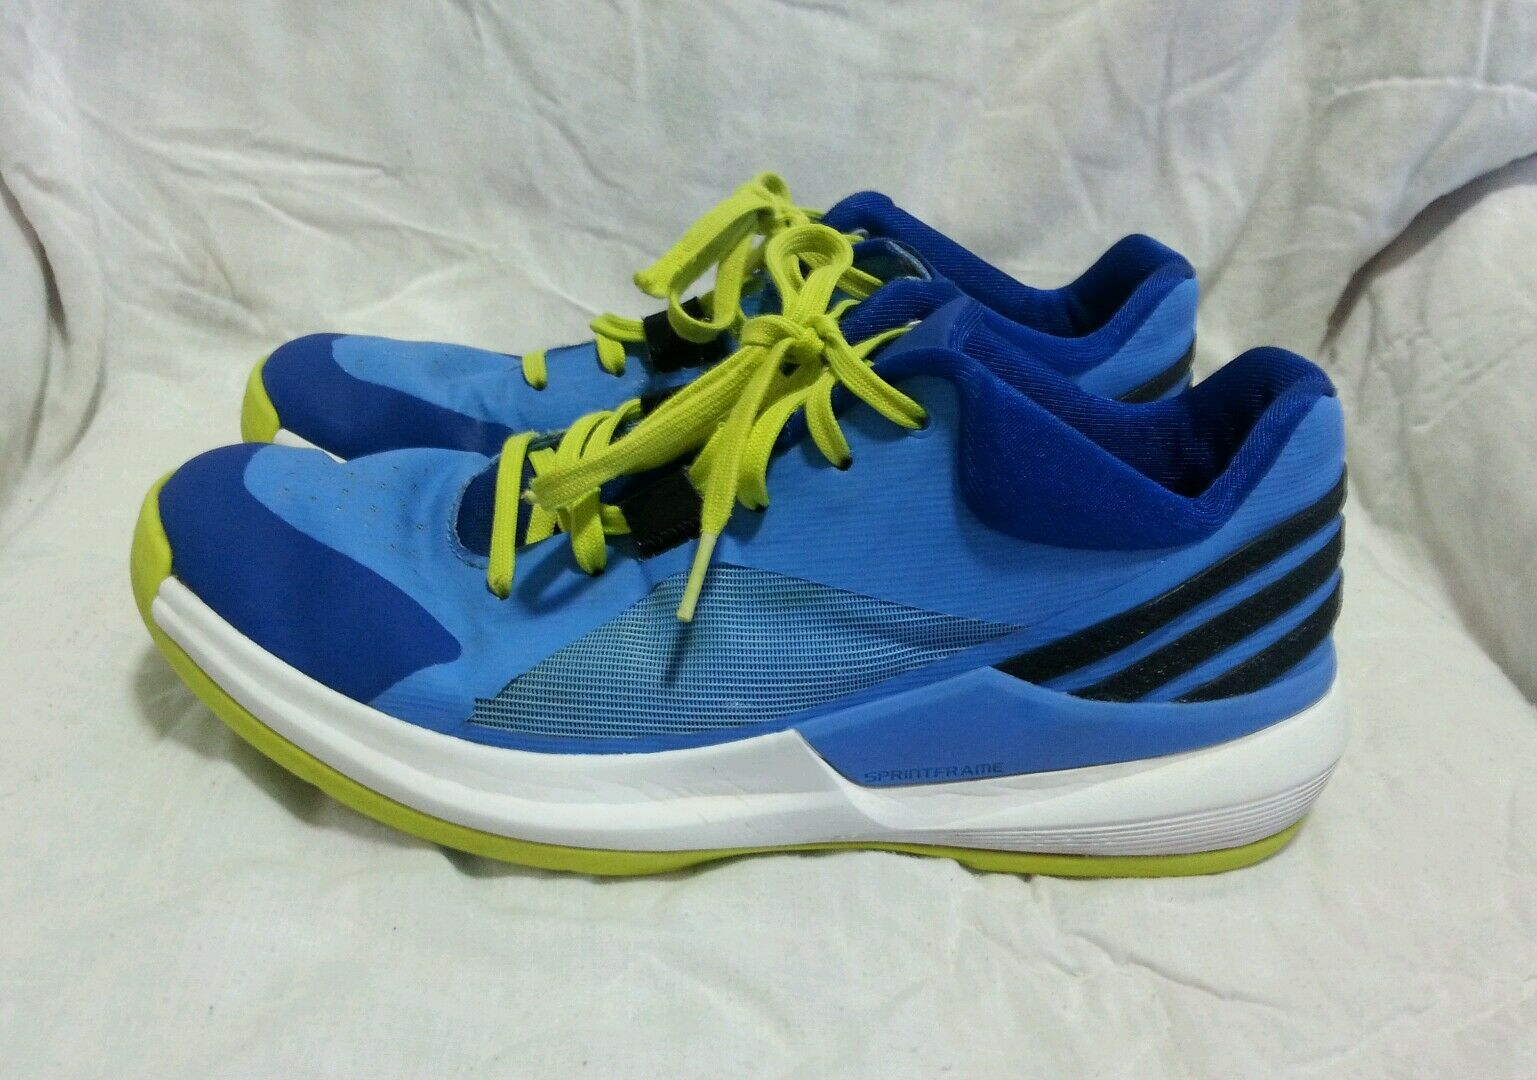 ADIDAS SPRINT FRAME BASKETBALL SHOES - BLUE YELLOW WHITE  Price reduction MEN`S Comfortable and good-looking